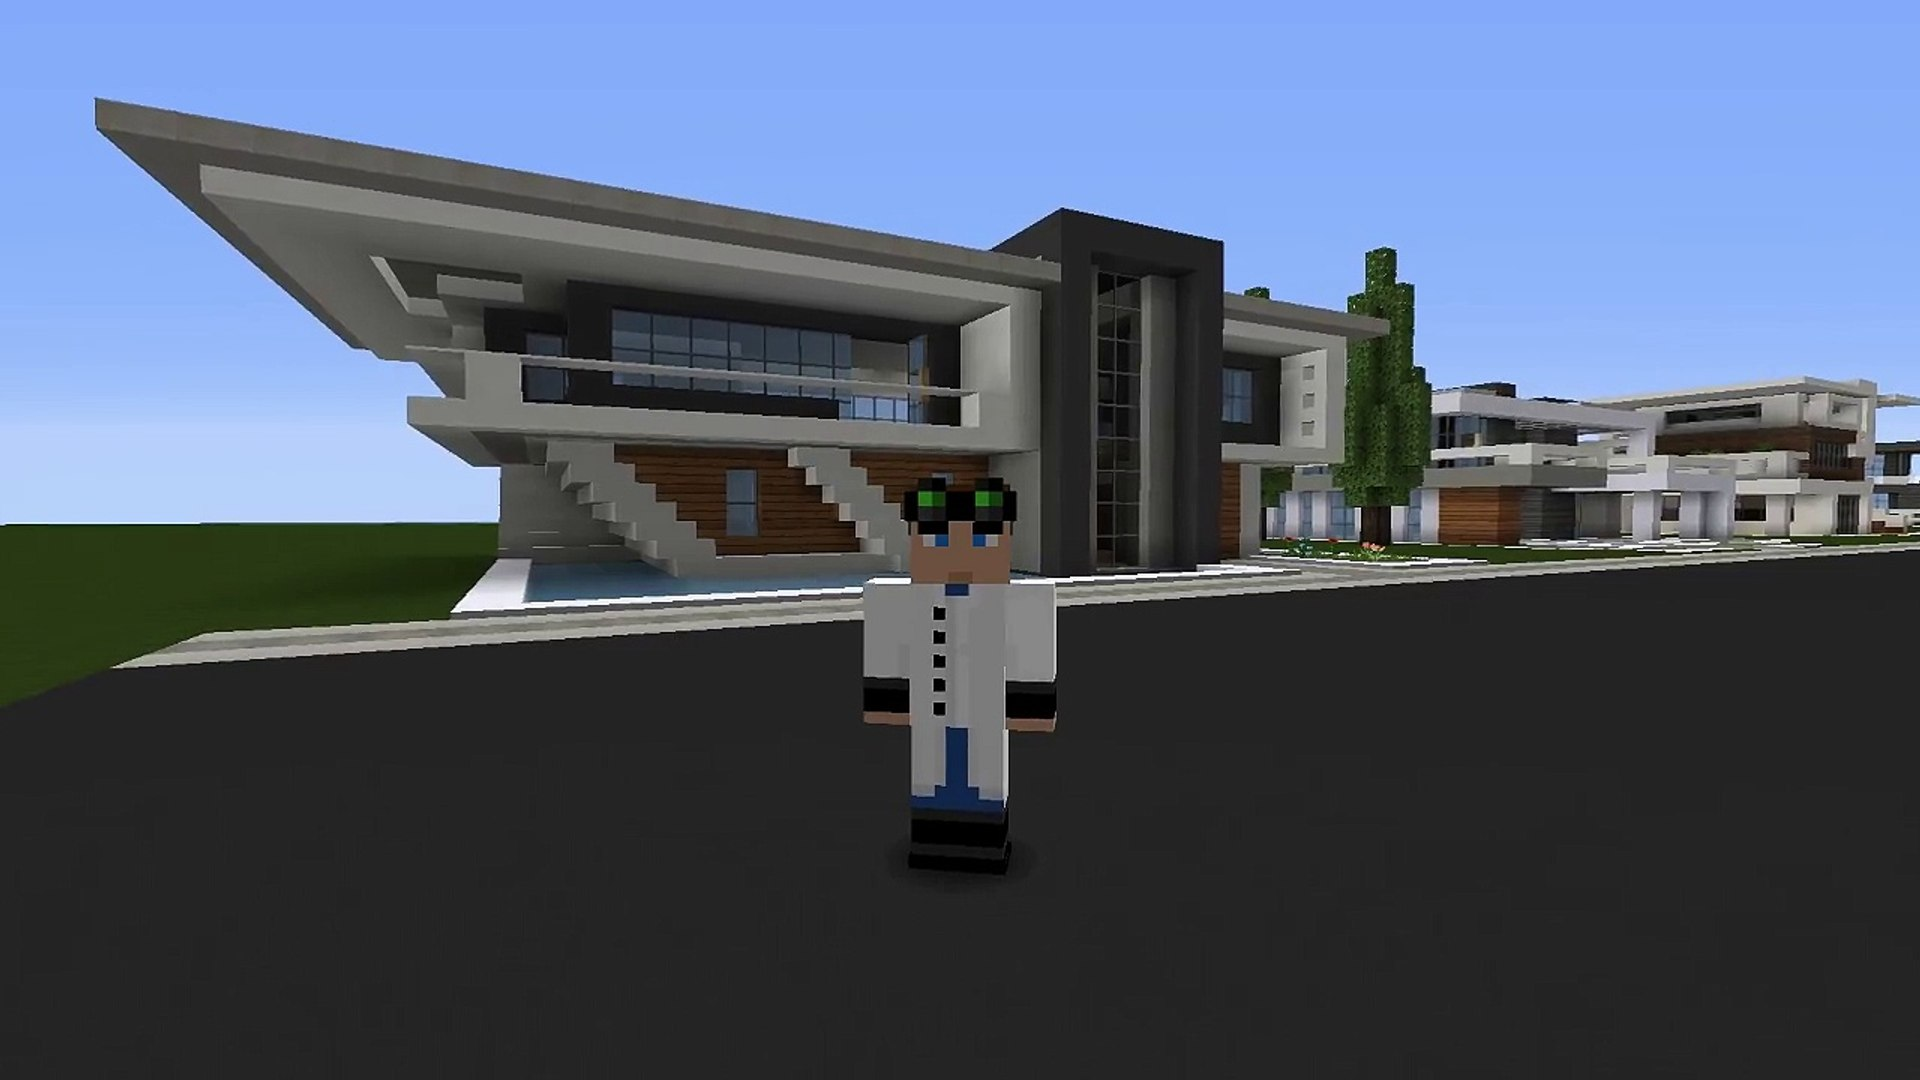 Minecraft Easy Modern House Mansion Tutorial 5 Download 1 8 How To Make Video Dailymotion